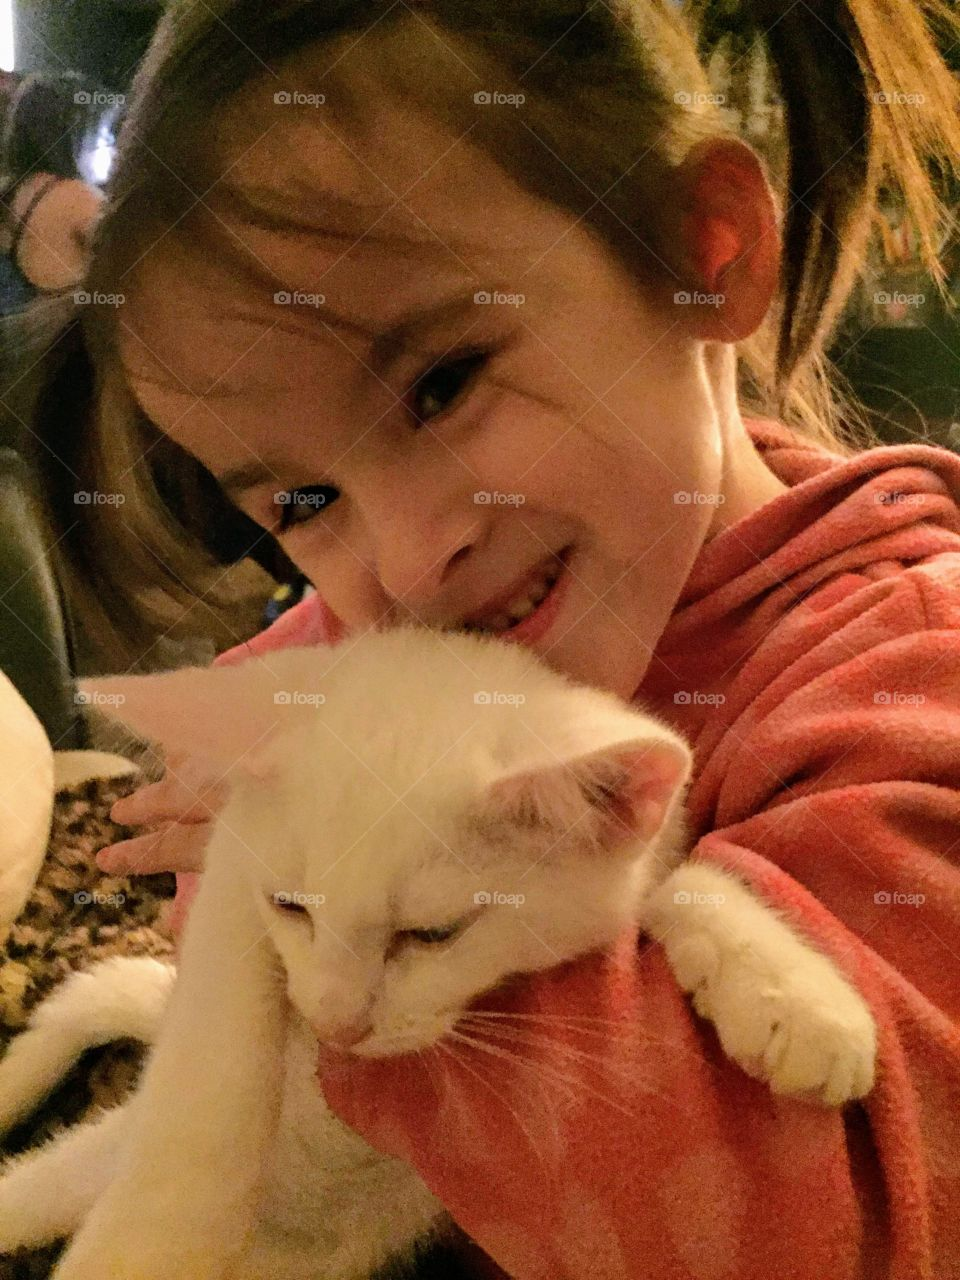 child and the love of her kitten